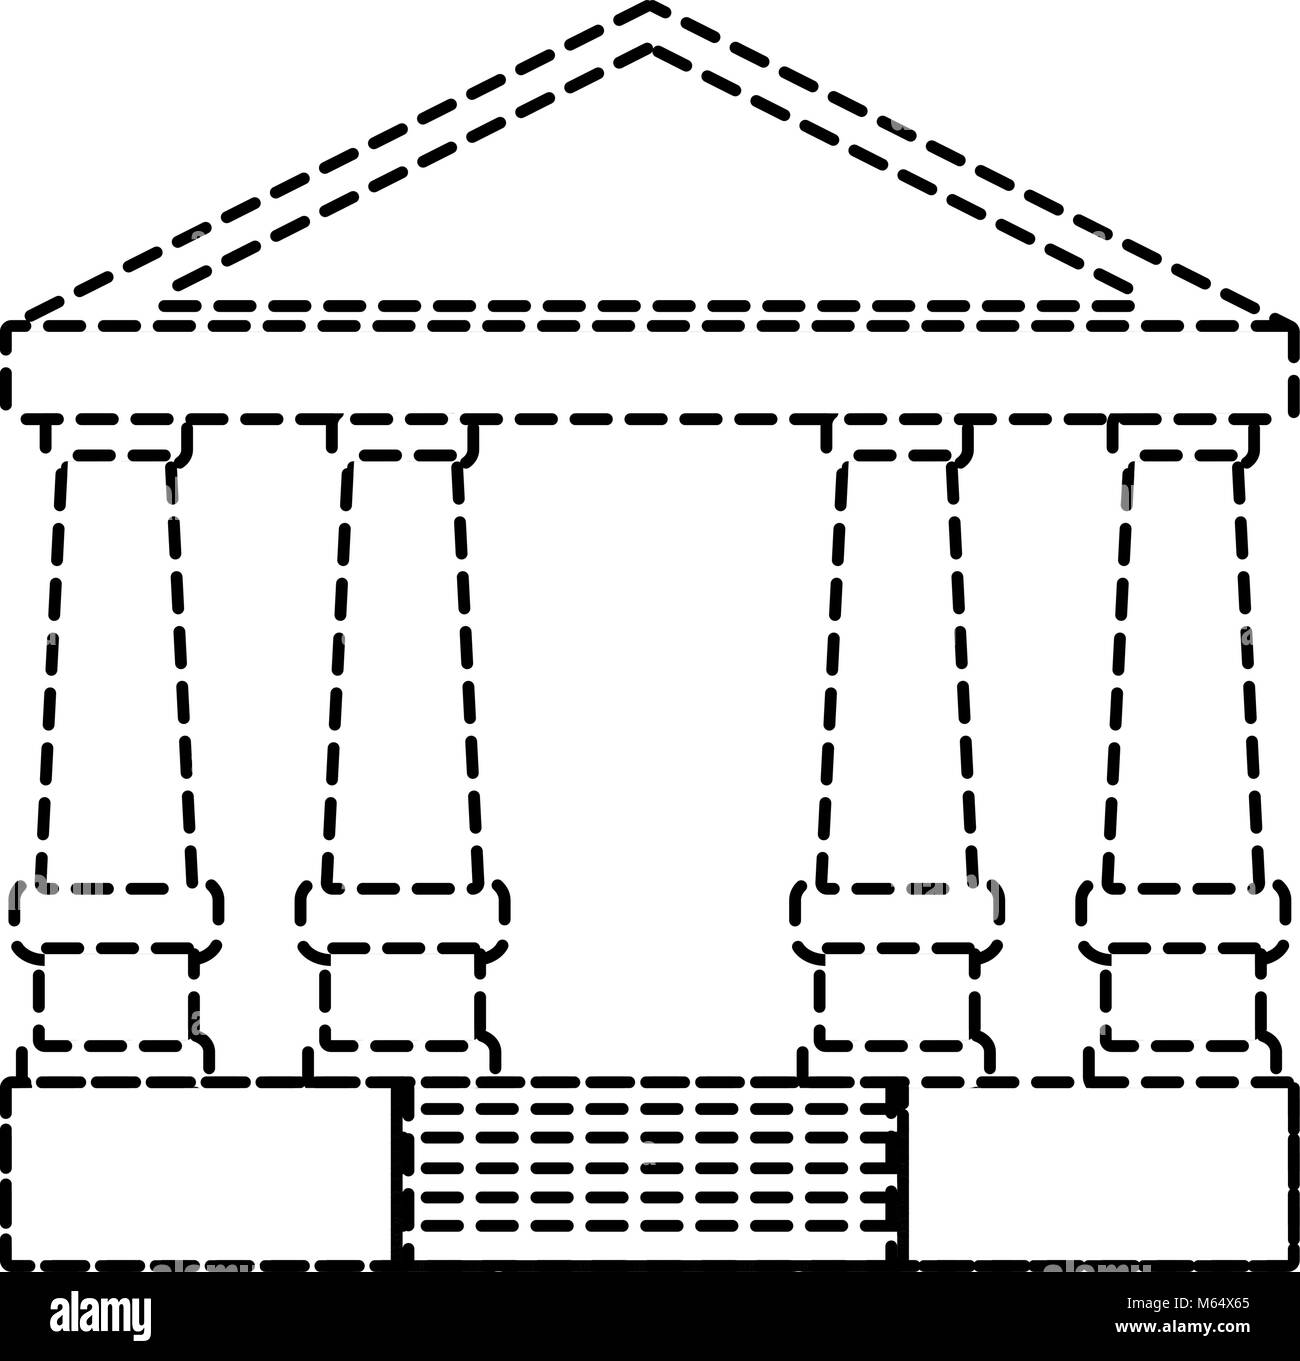 Justice court building icon - Stock Image